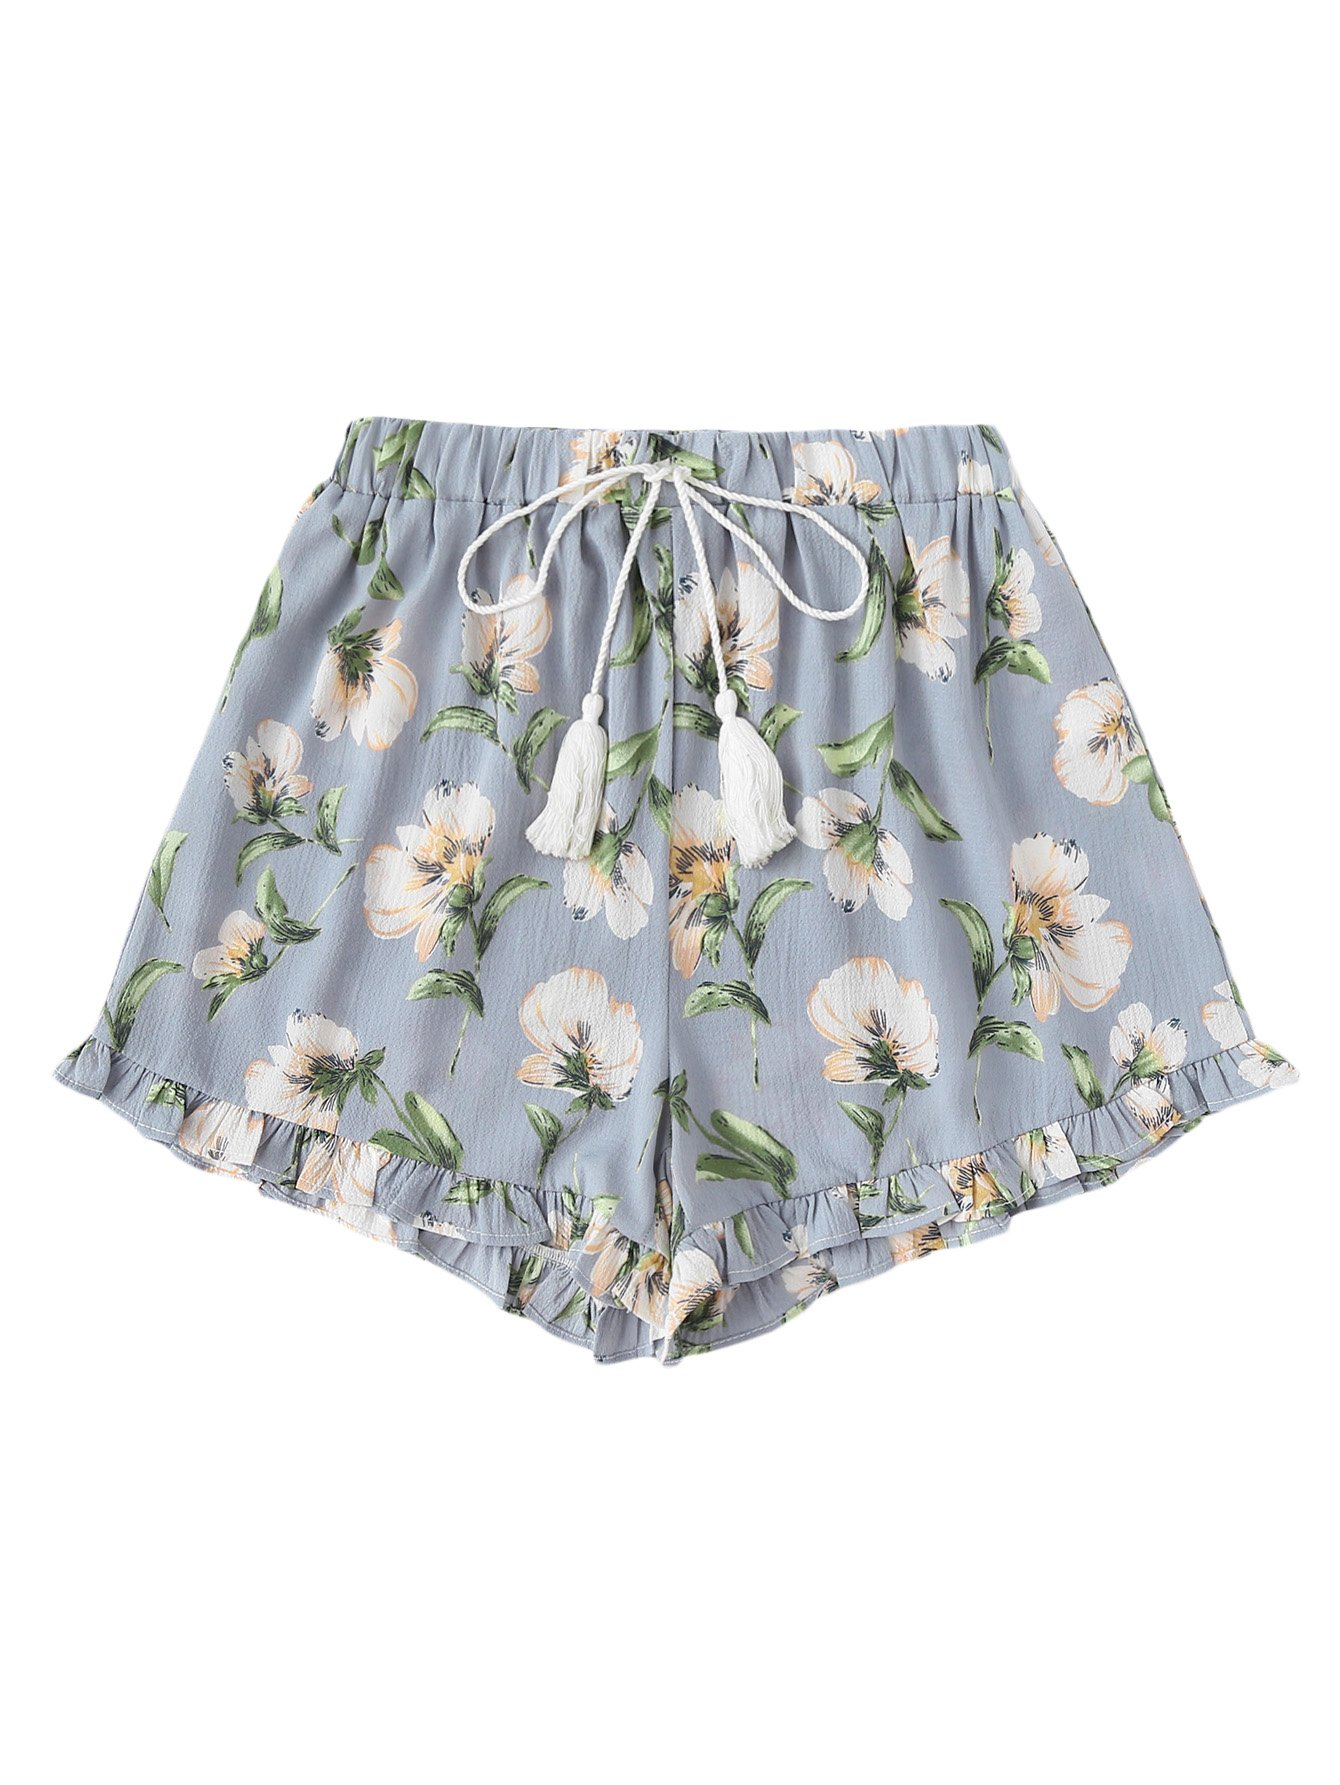 SweatyRocks Women's Vintage Floral Embroidery Drawstring Summer Casual Shorts Multicolor S